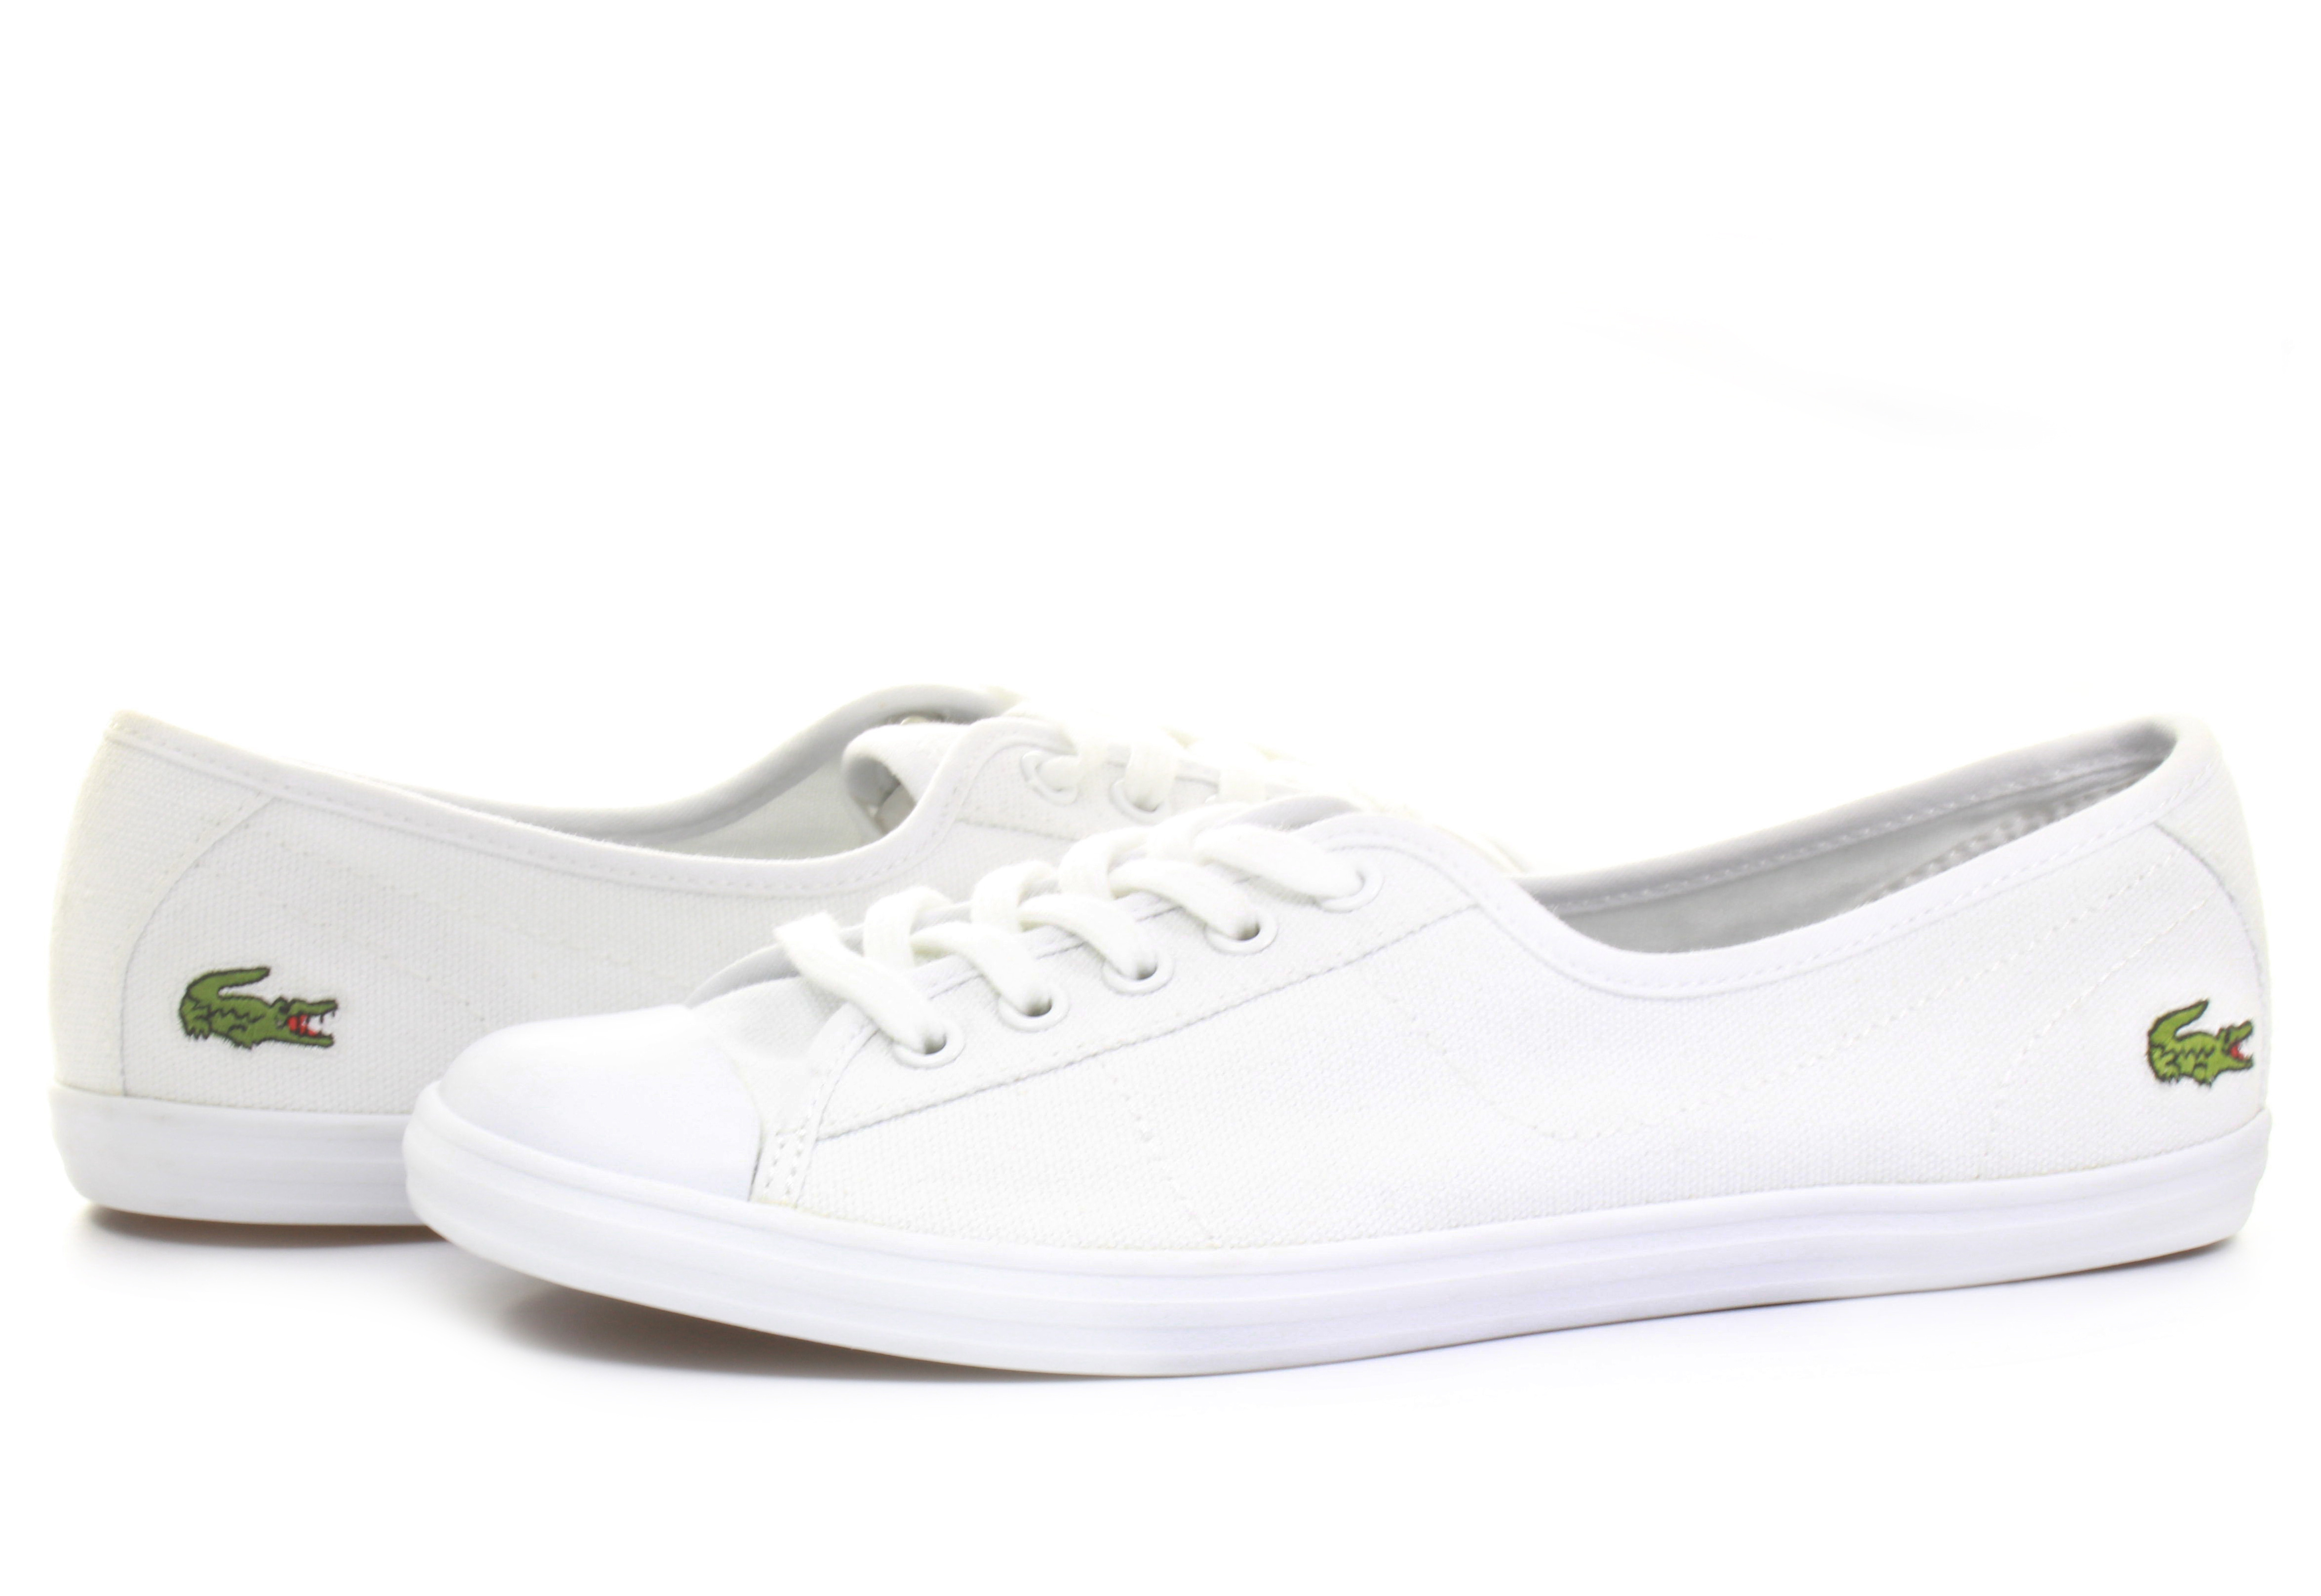 Lacoste Cipő - Ziane Lcr2 - 141spw0150-21g - Office Shoes ... ab8a9665b9